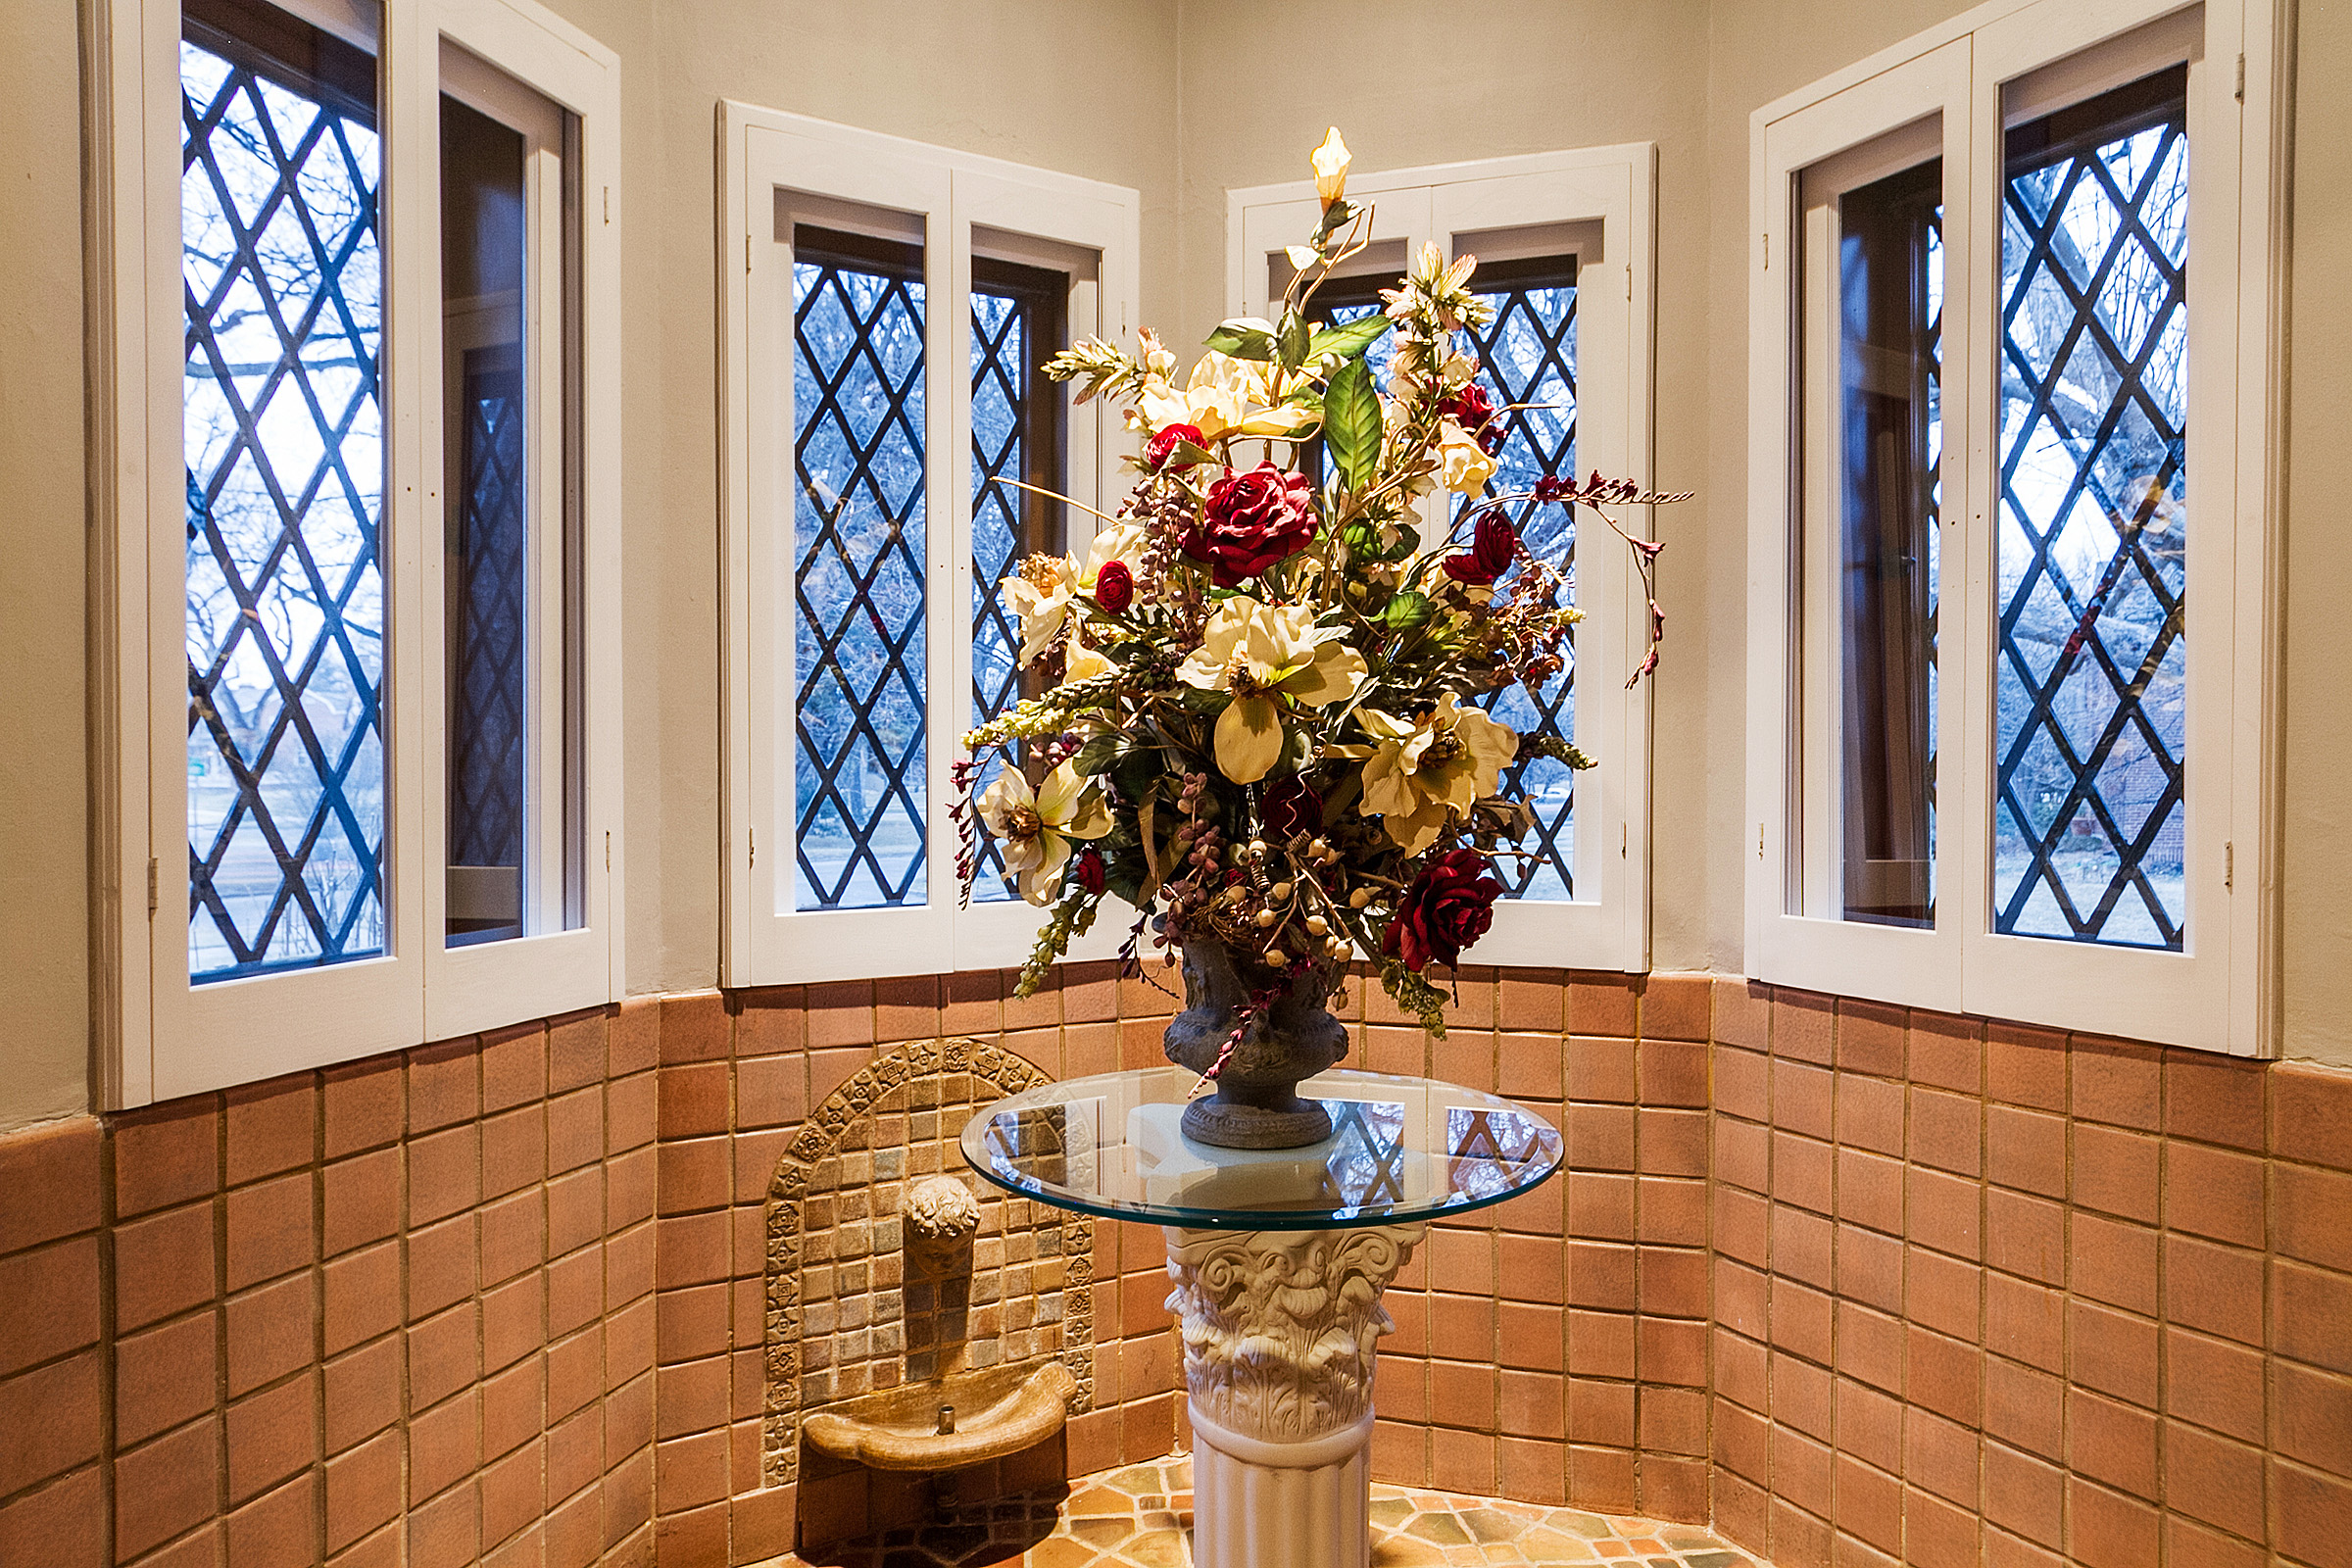 1183149_Living-Room-Turret-Has-Vintage-Tile--amp--Fountain_high.jpg